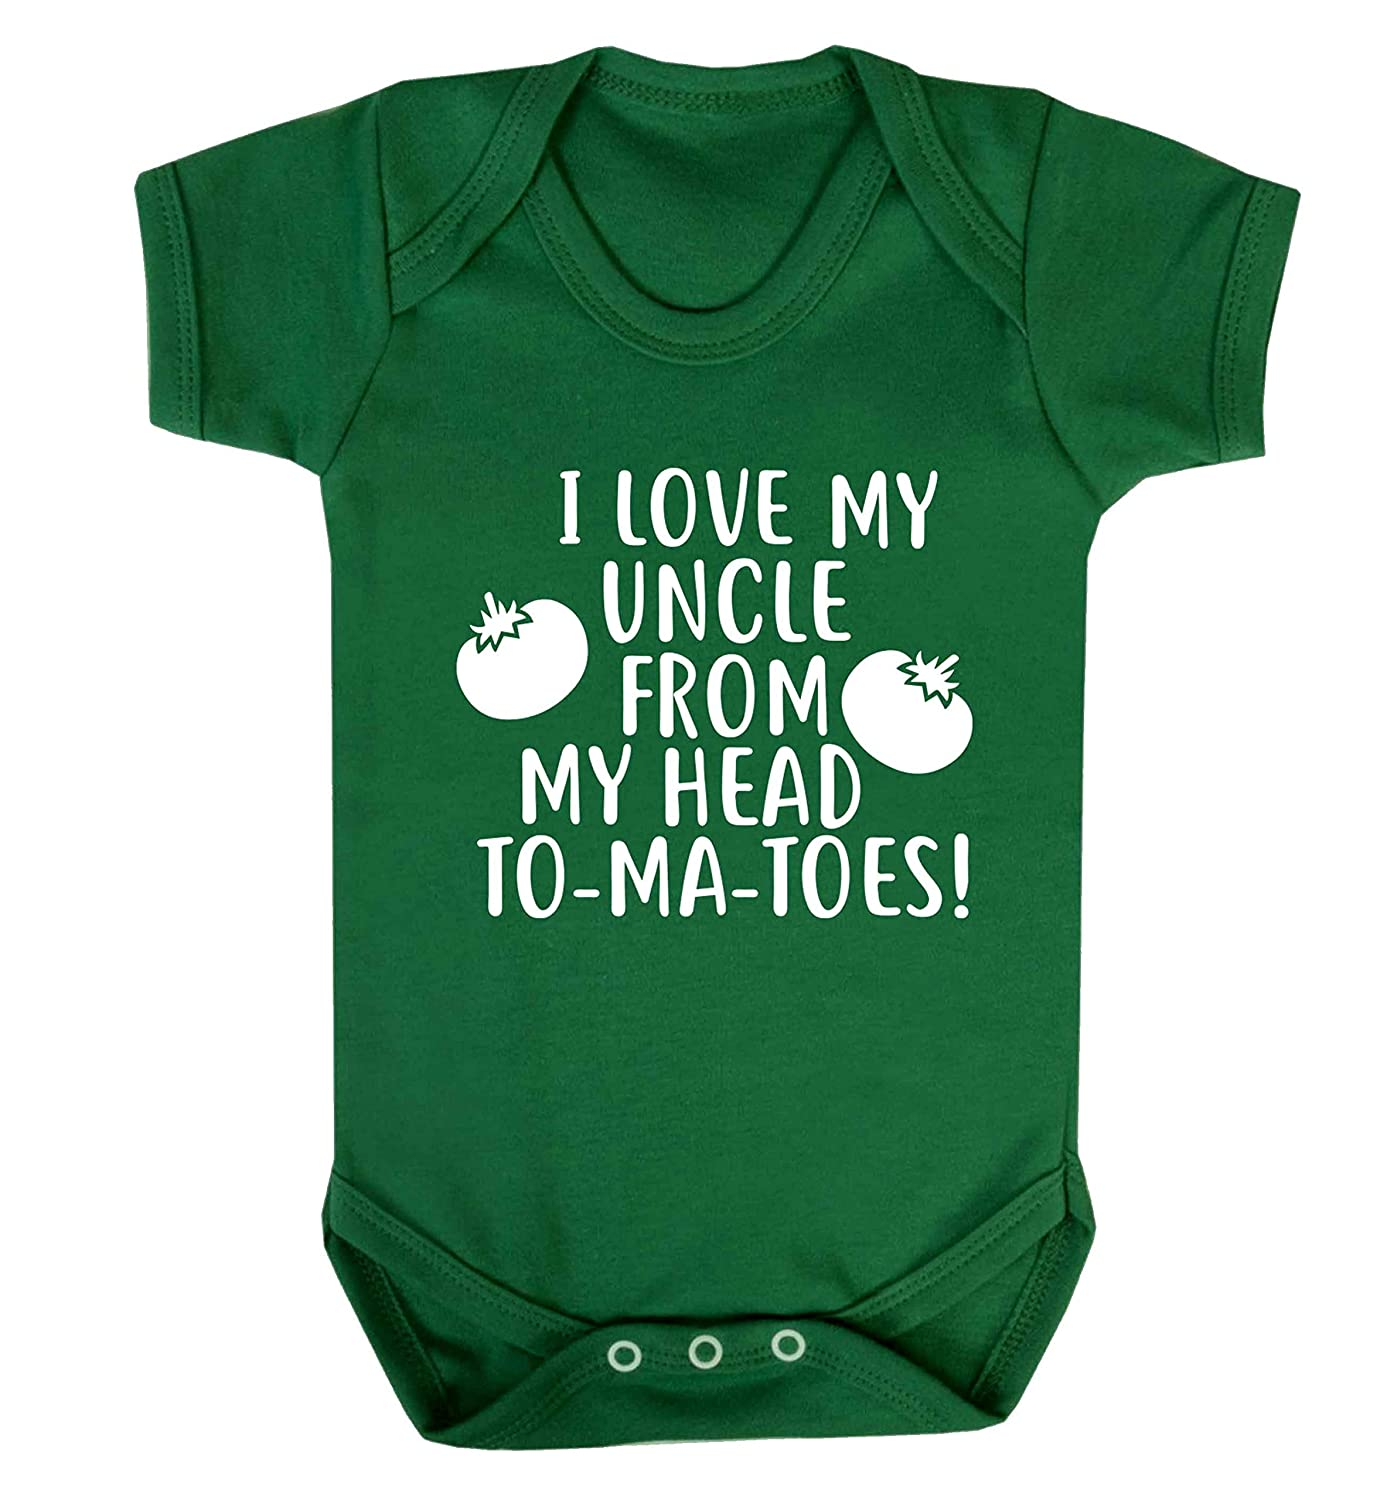 Flox Creative Baby Vest Love Uncle Head to-Ma-Toes